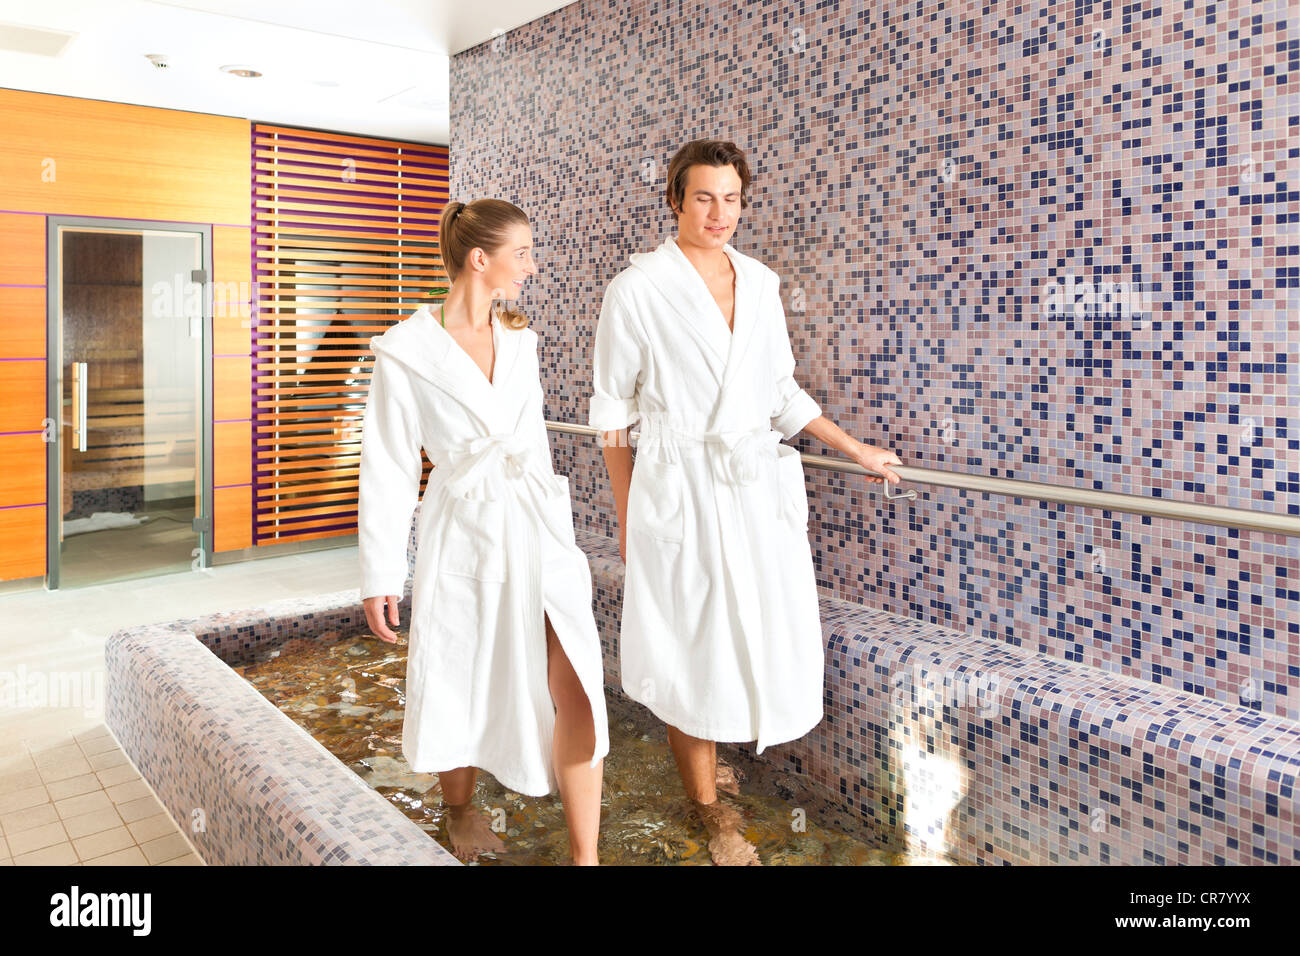 Man and woman while wellness water treading or hydrotherapy - Stock Image